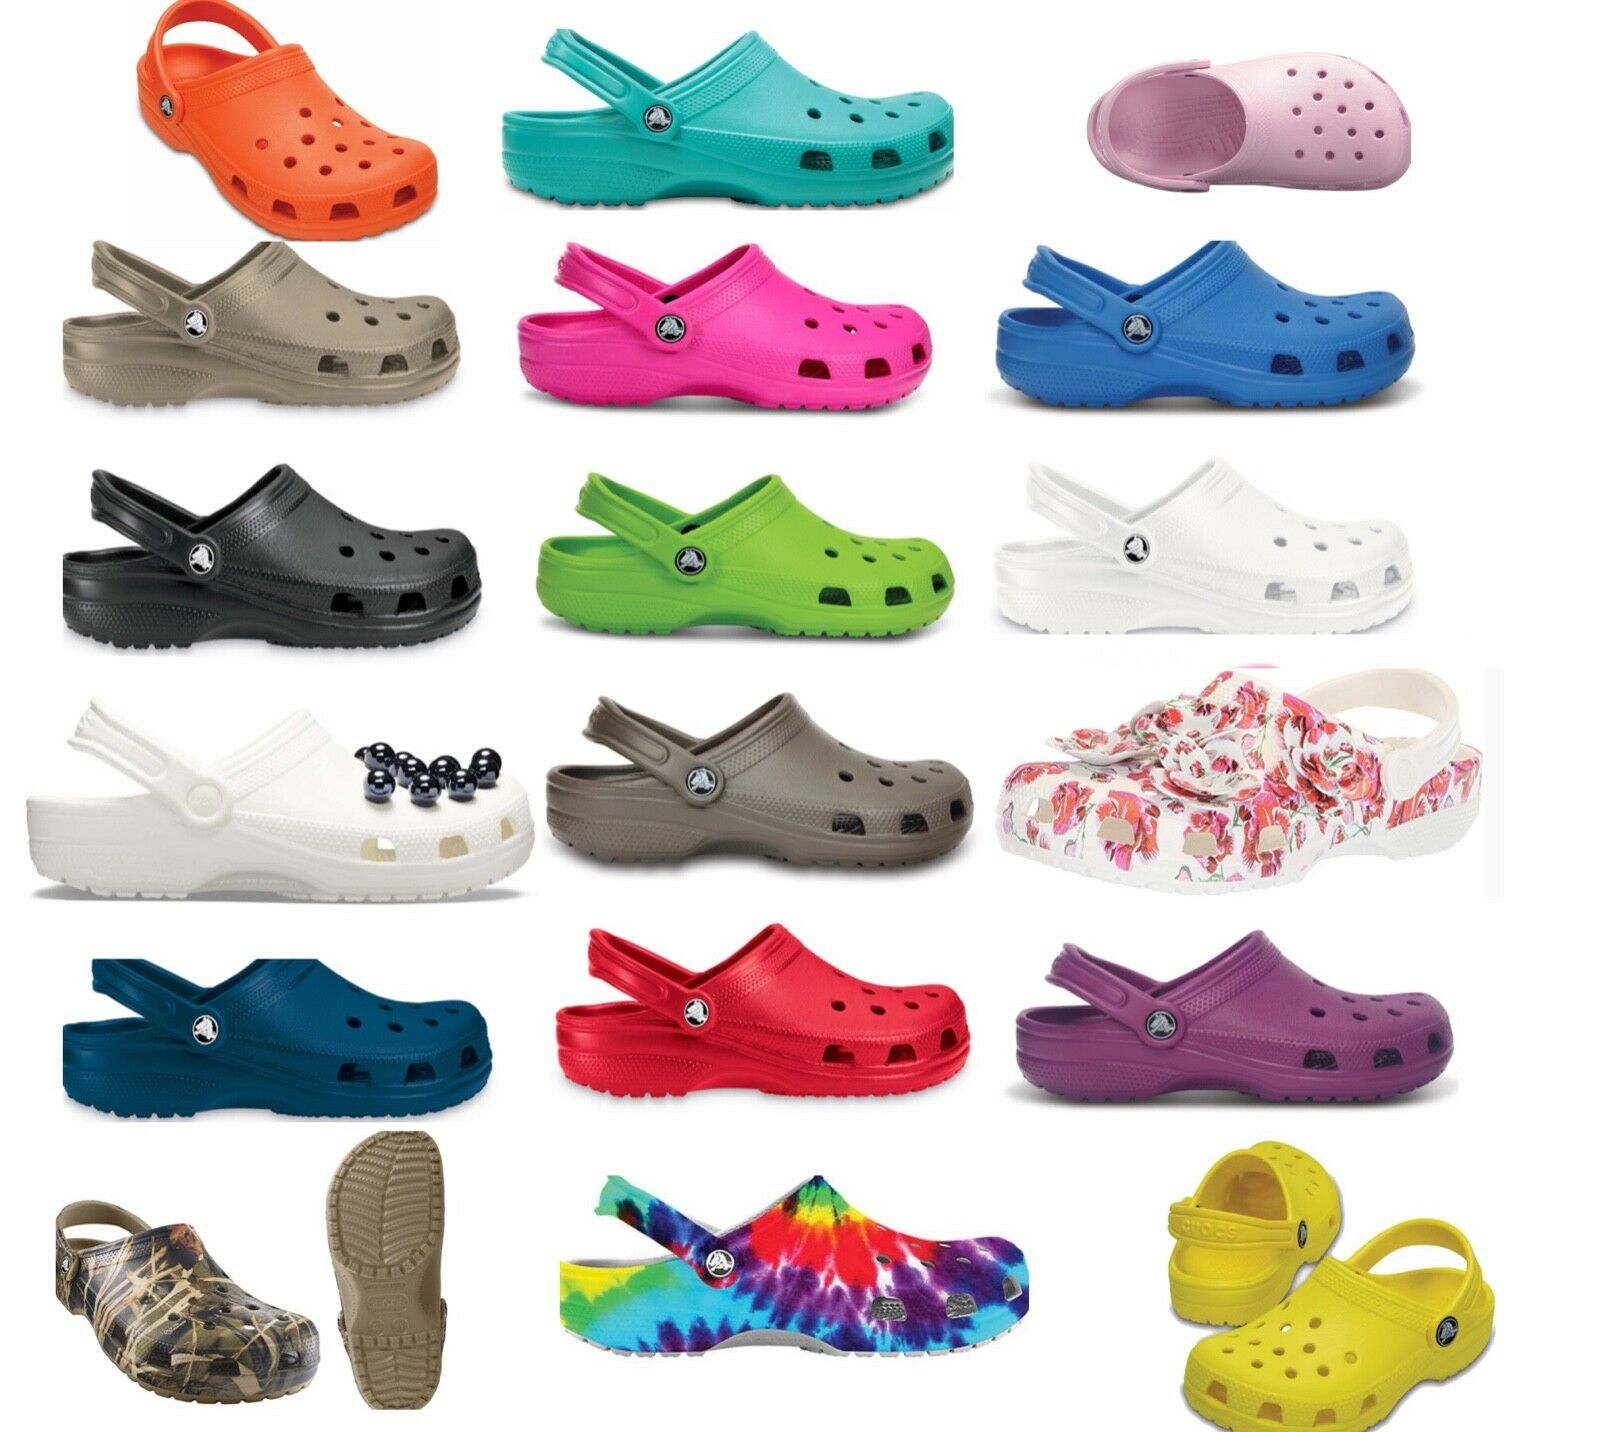 25 + colors, CROCS Original CLASSIC Clogs Shoes sandals size